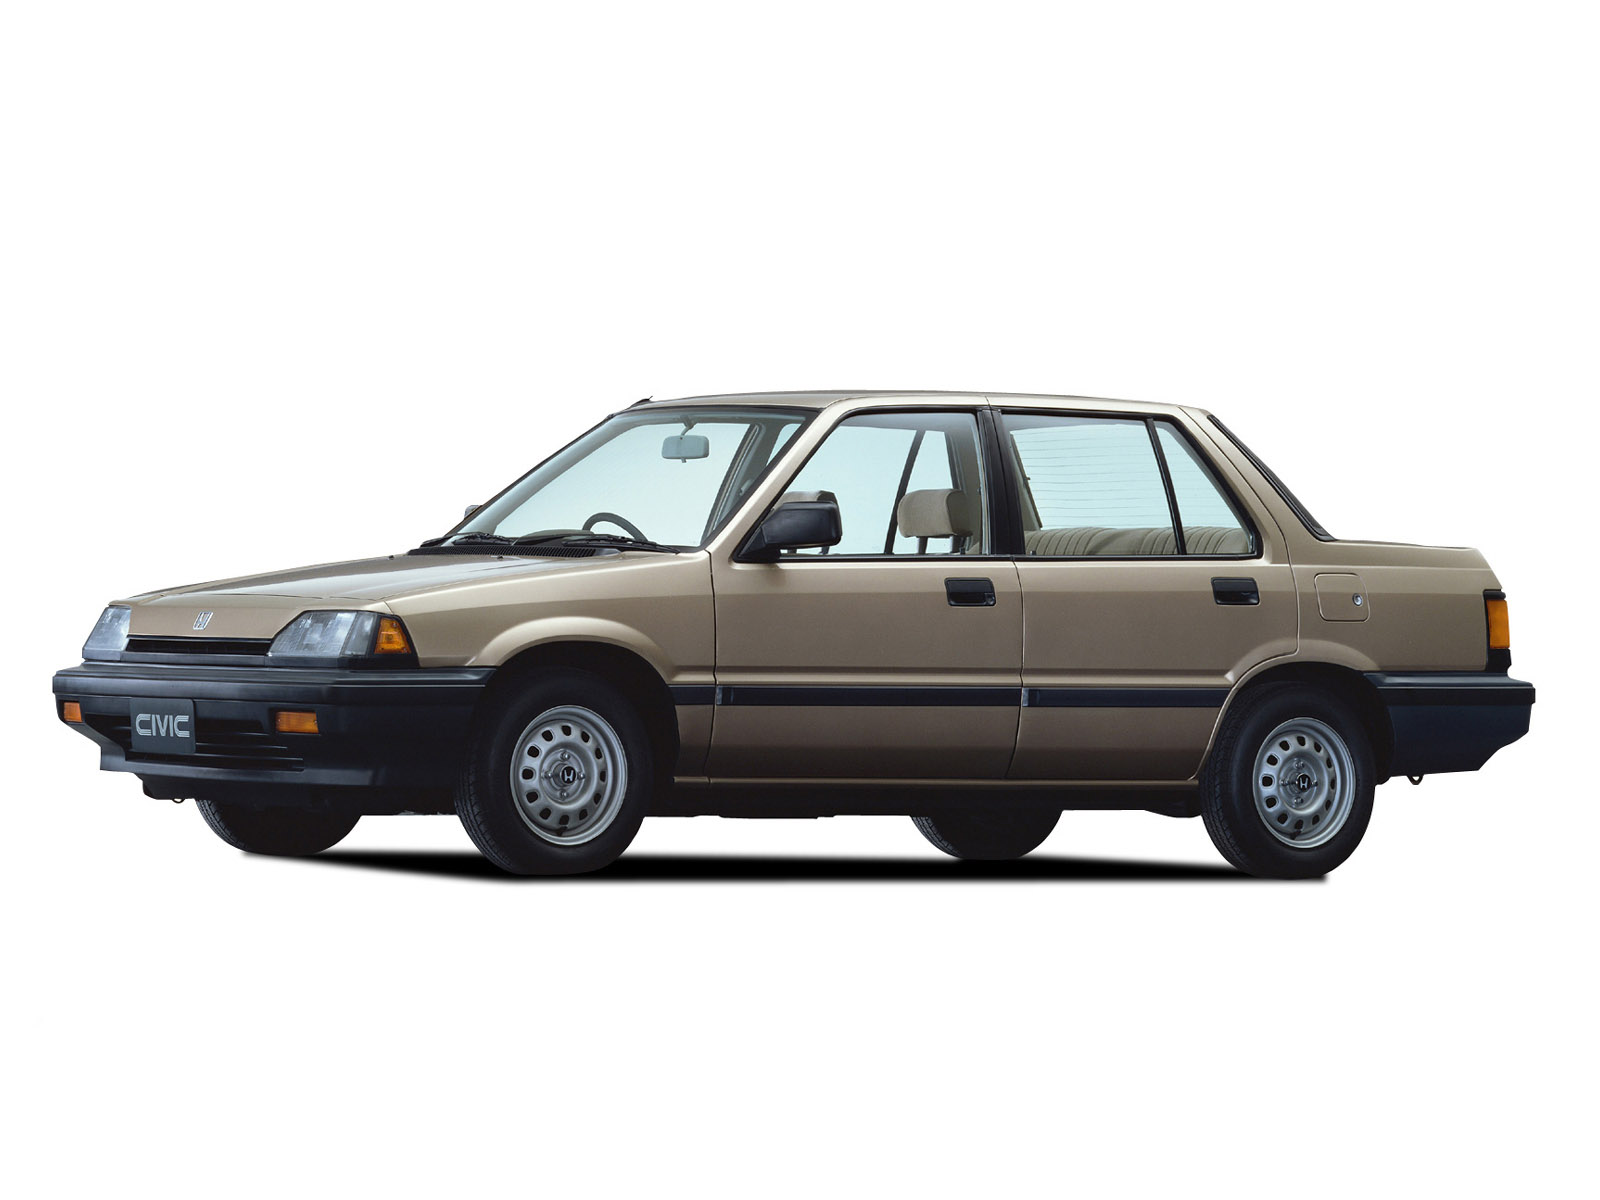 Honda Civic 1.4 1983 photo - 12